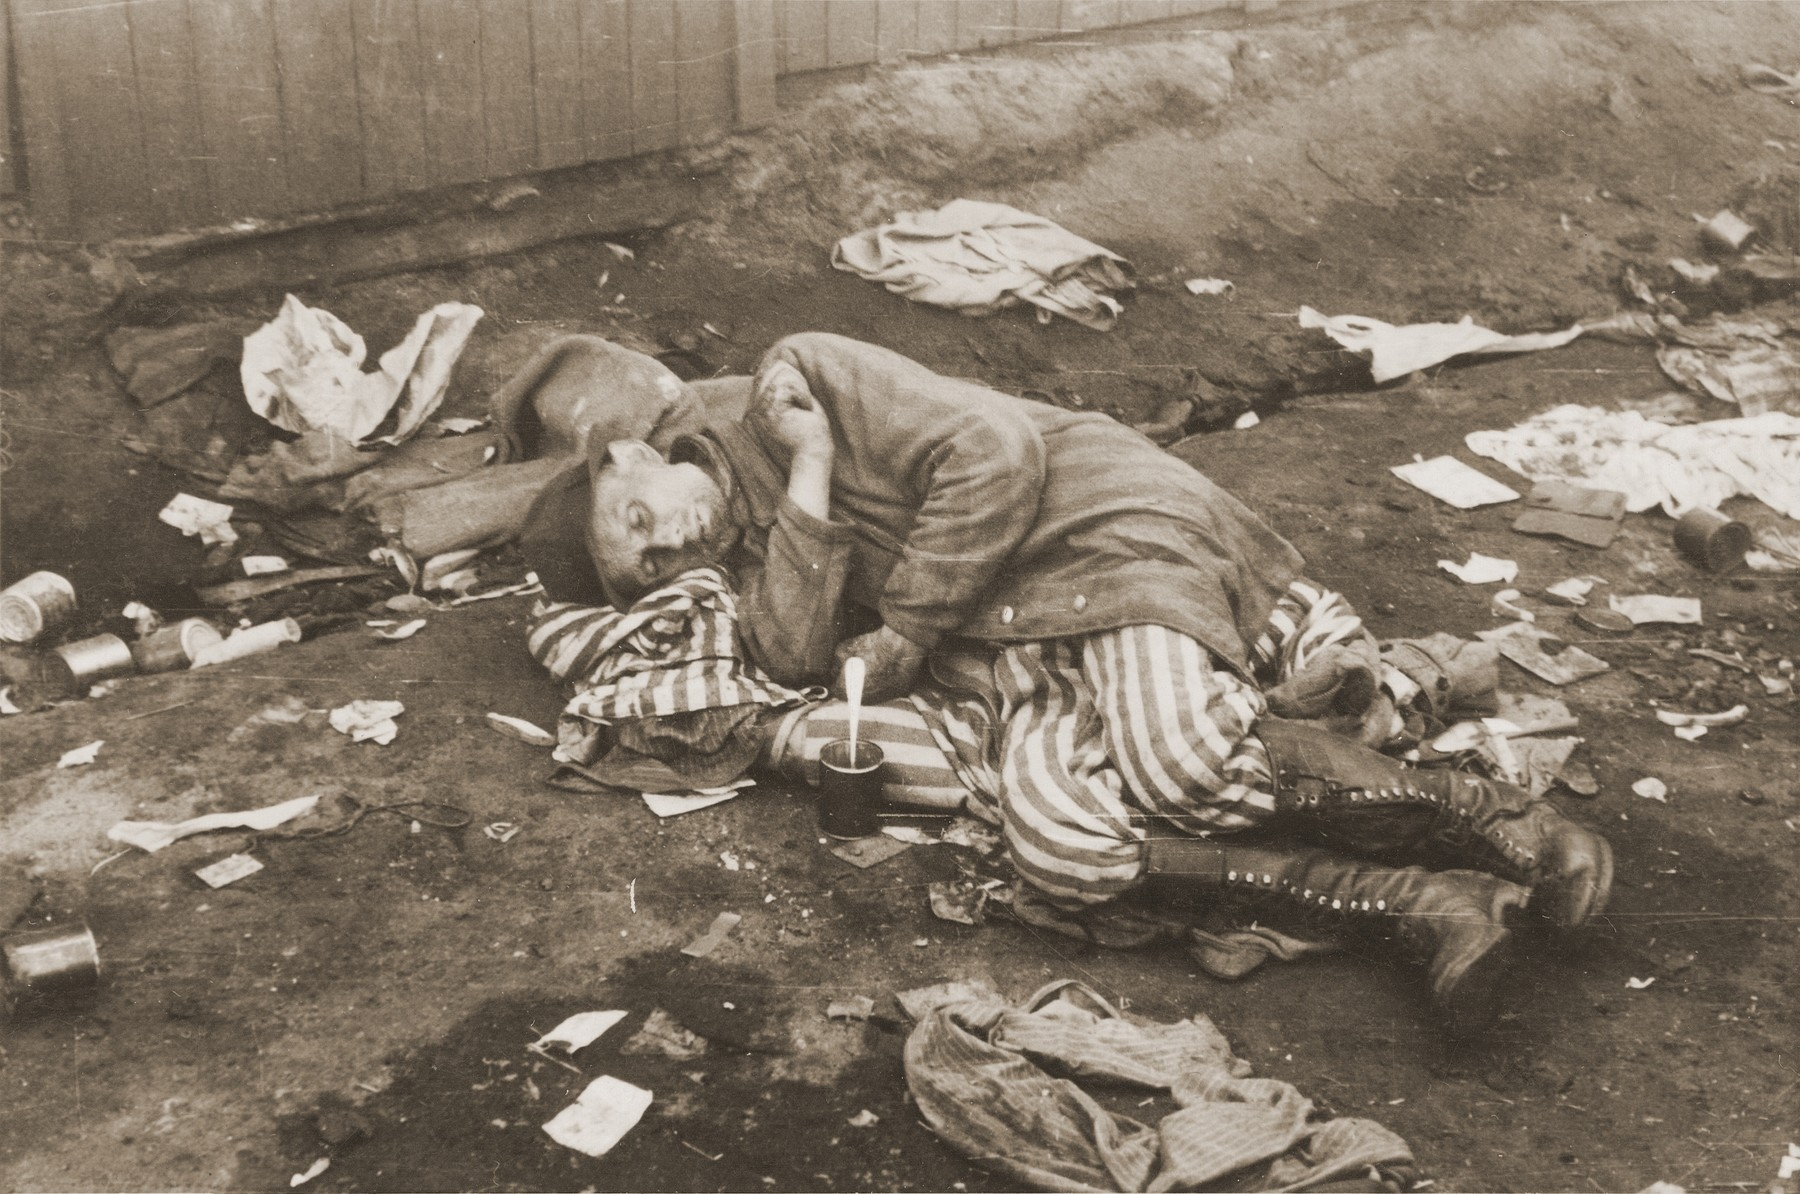 Having just eaten a tin of canned food given to him by British troops, and wearing a newly acquired pair of boots, a survivor in Bergen-Belsen sleeps on a pile of prisoners' uniforms.